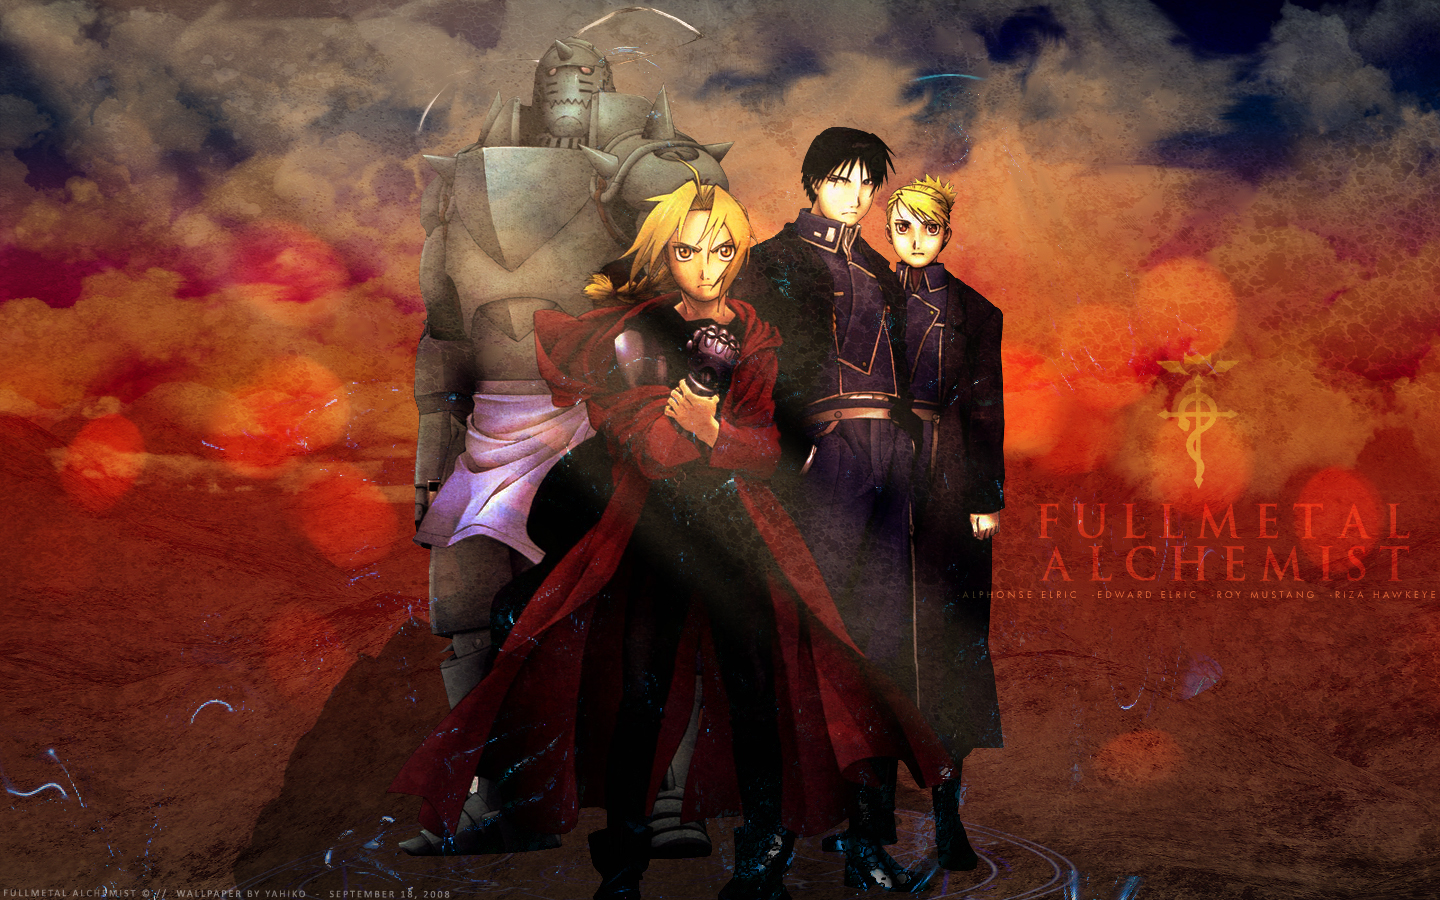 Fullmetal Alchemist Brotherhood Wallpaper HD 1440x900